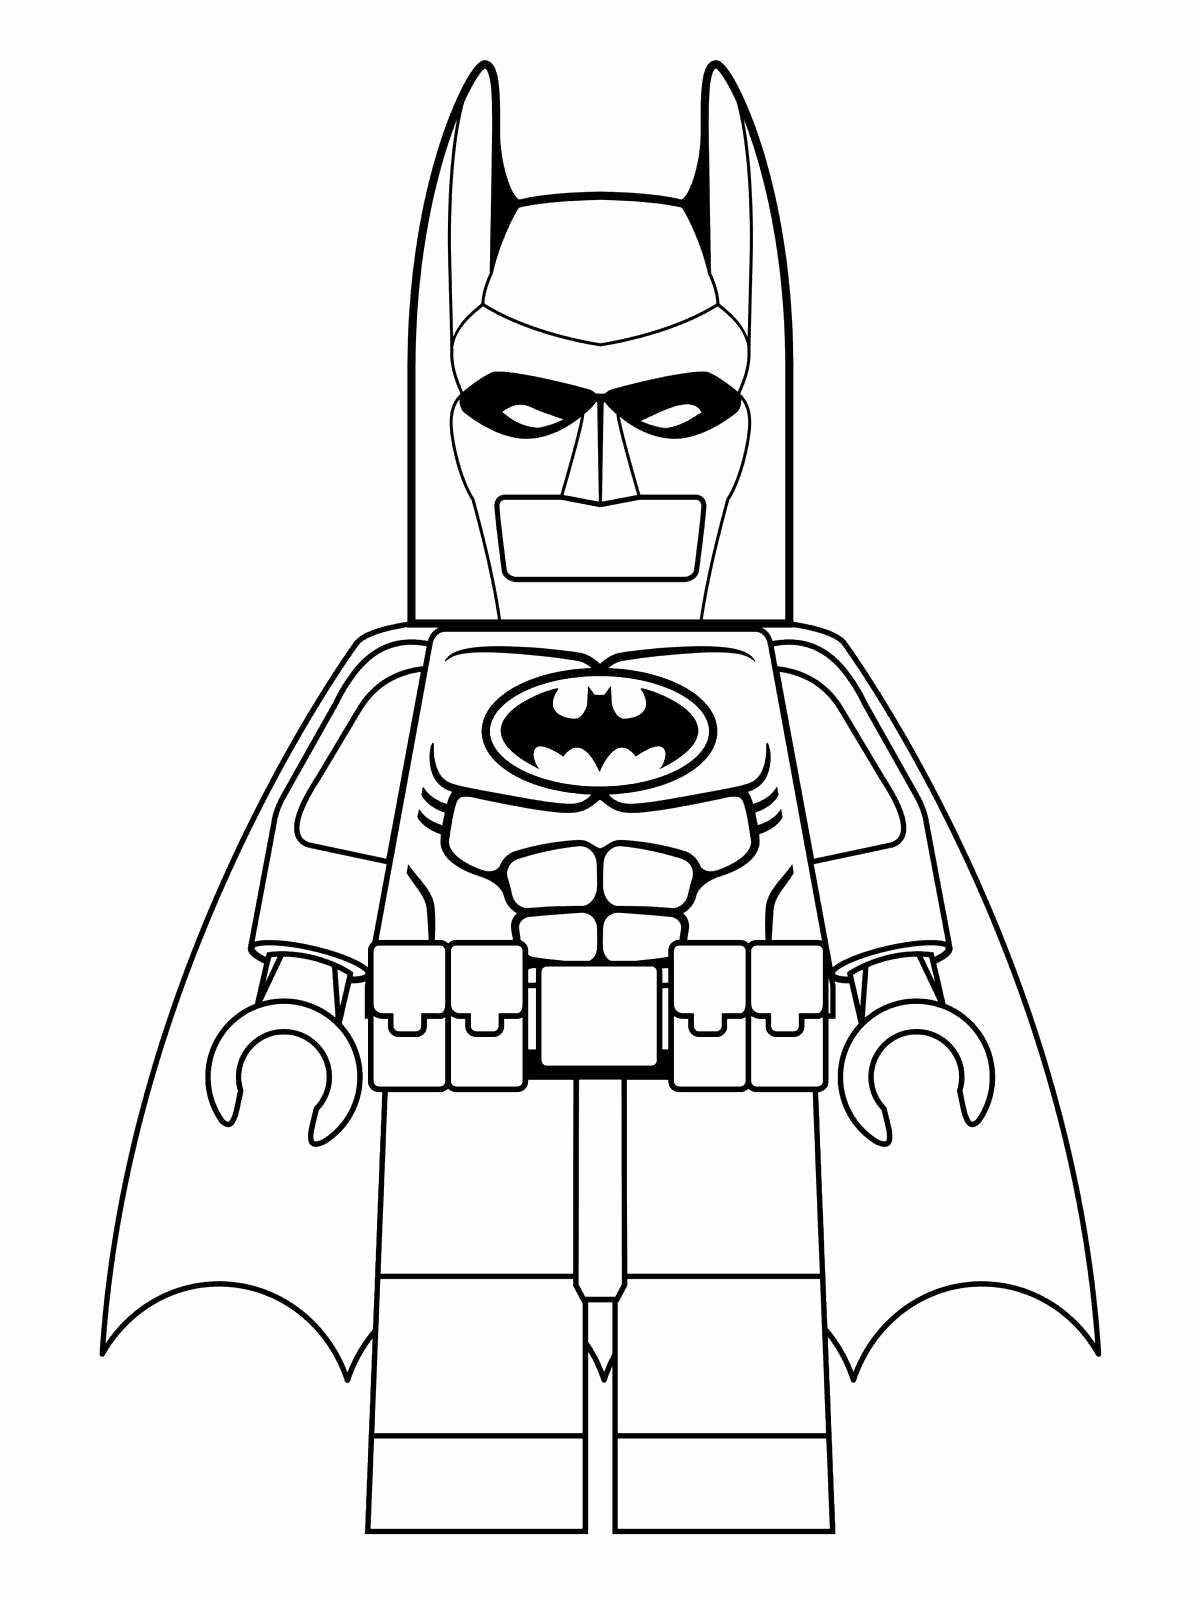 Christmas Batman Coloring Pages For Kids In 2020 Lego Movie Coloring Pages Superhero Coloring Lego Coloring Pages